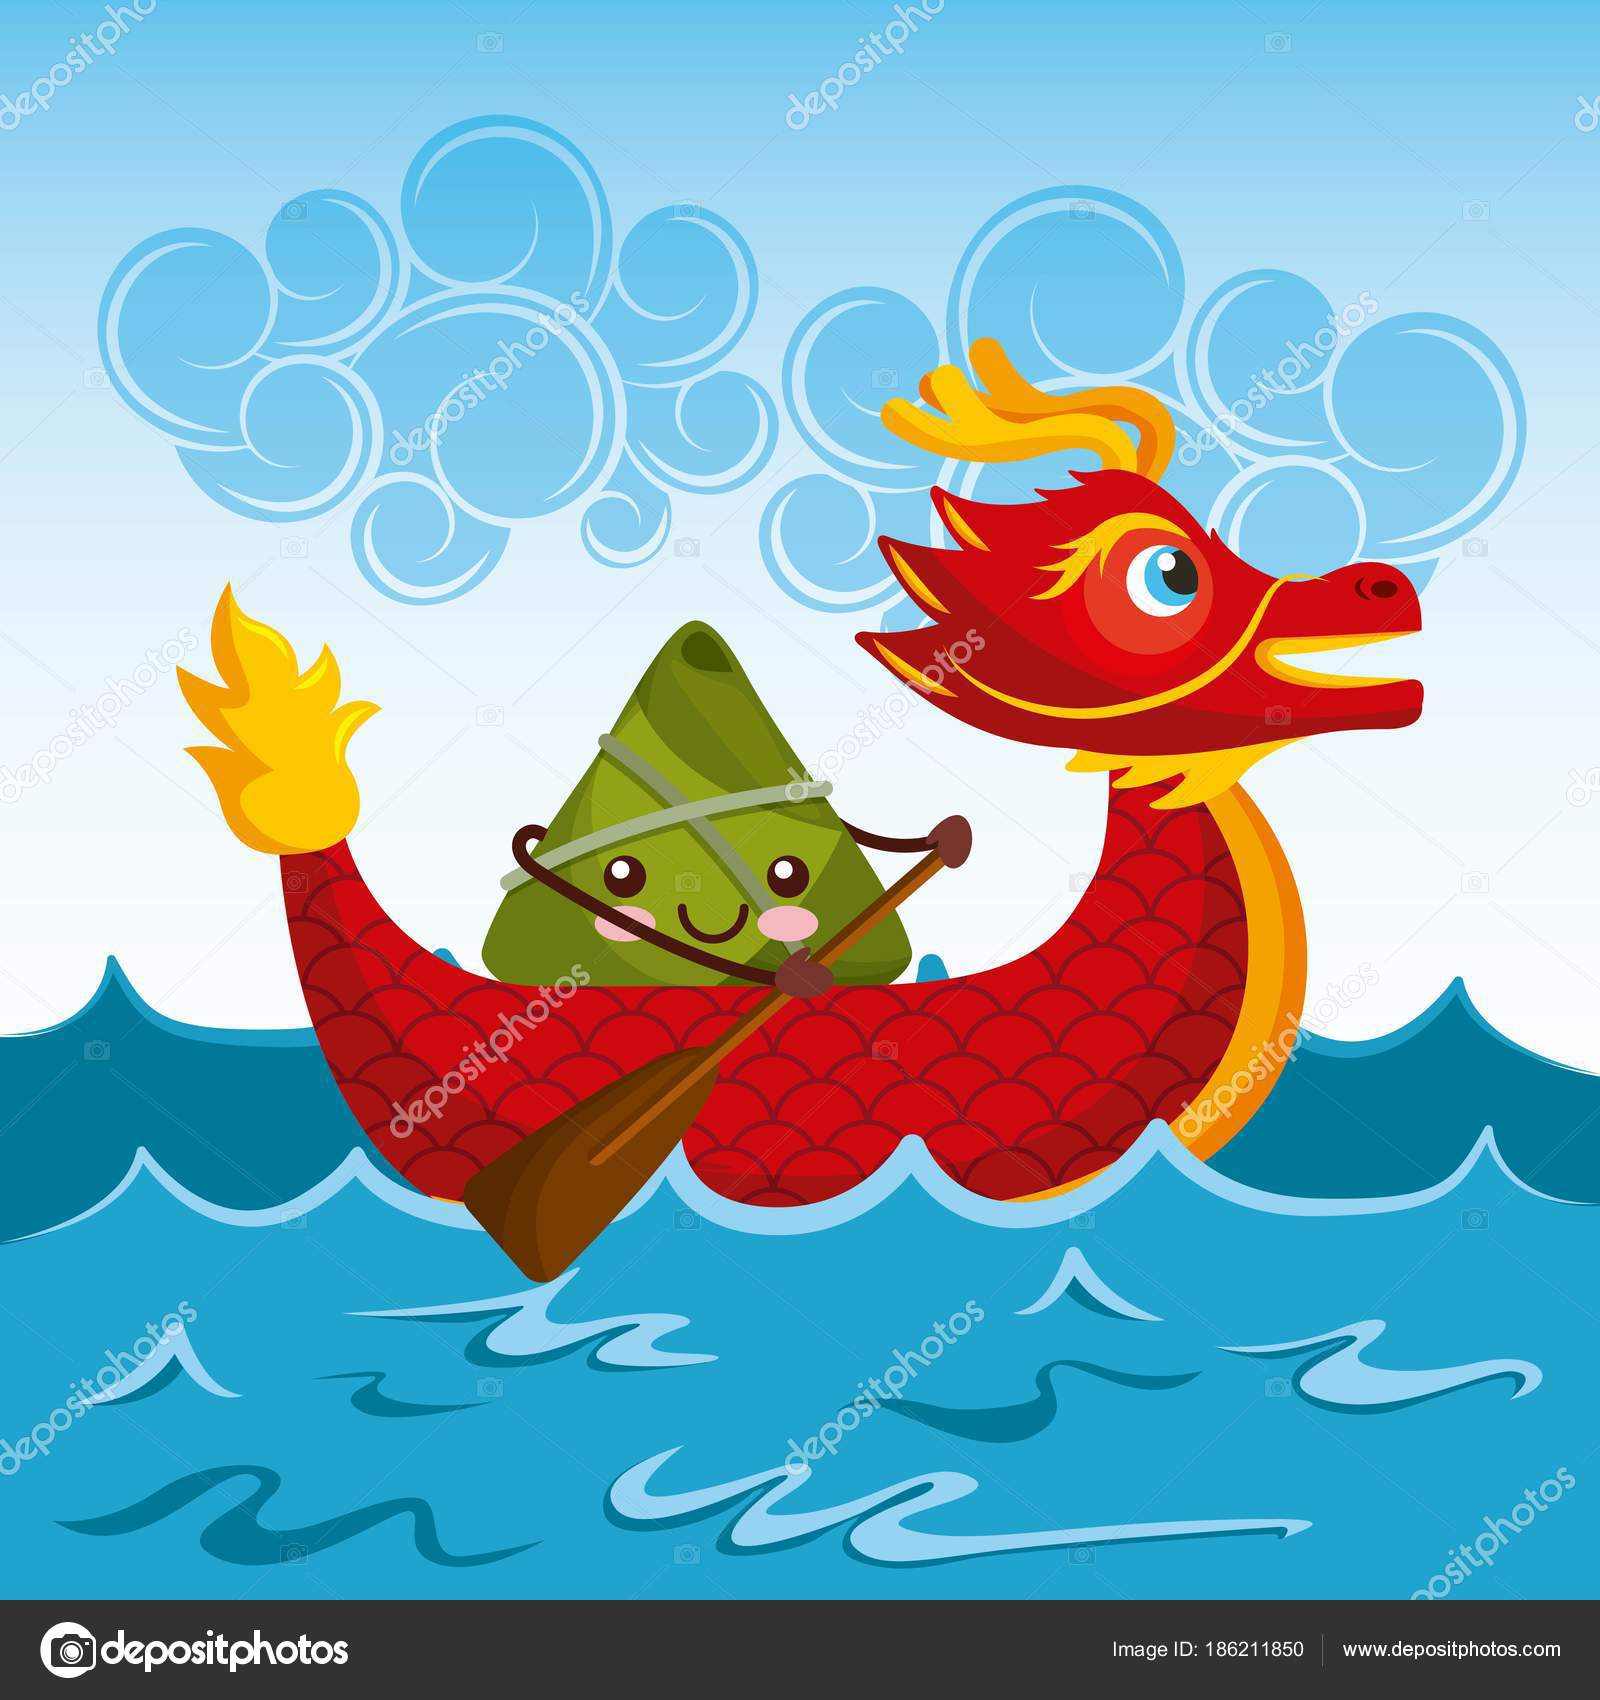 Chinese Rice Dumplings Cartoon Character And Dragon Boat Festival Vector Illustration By Yupiramos